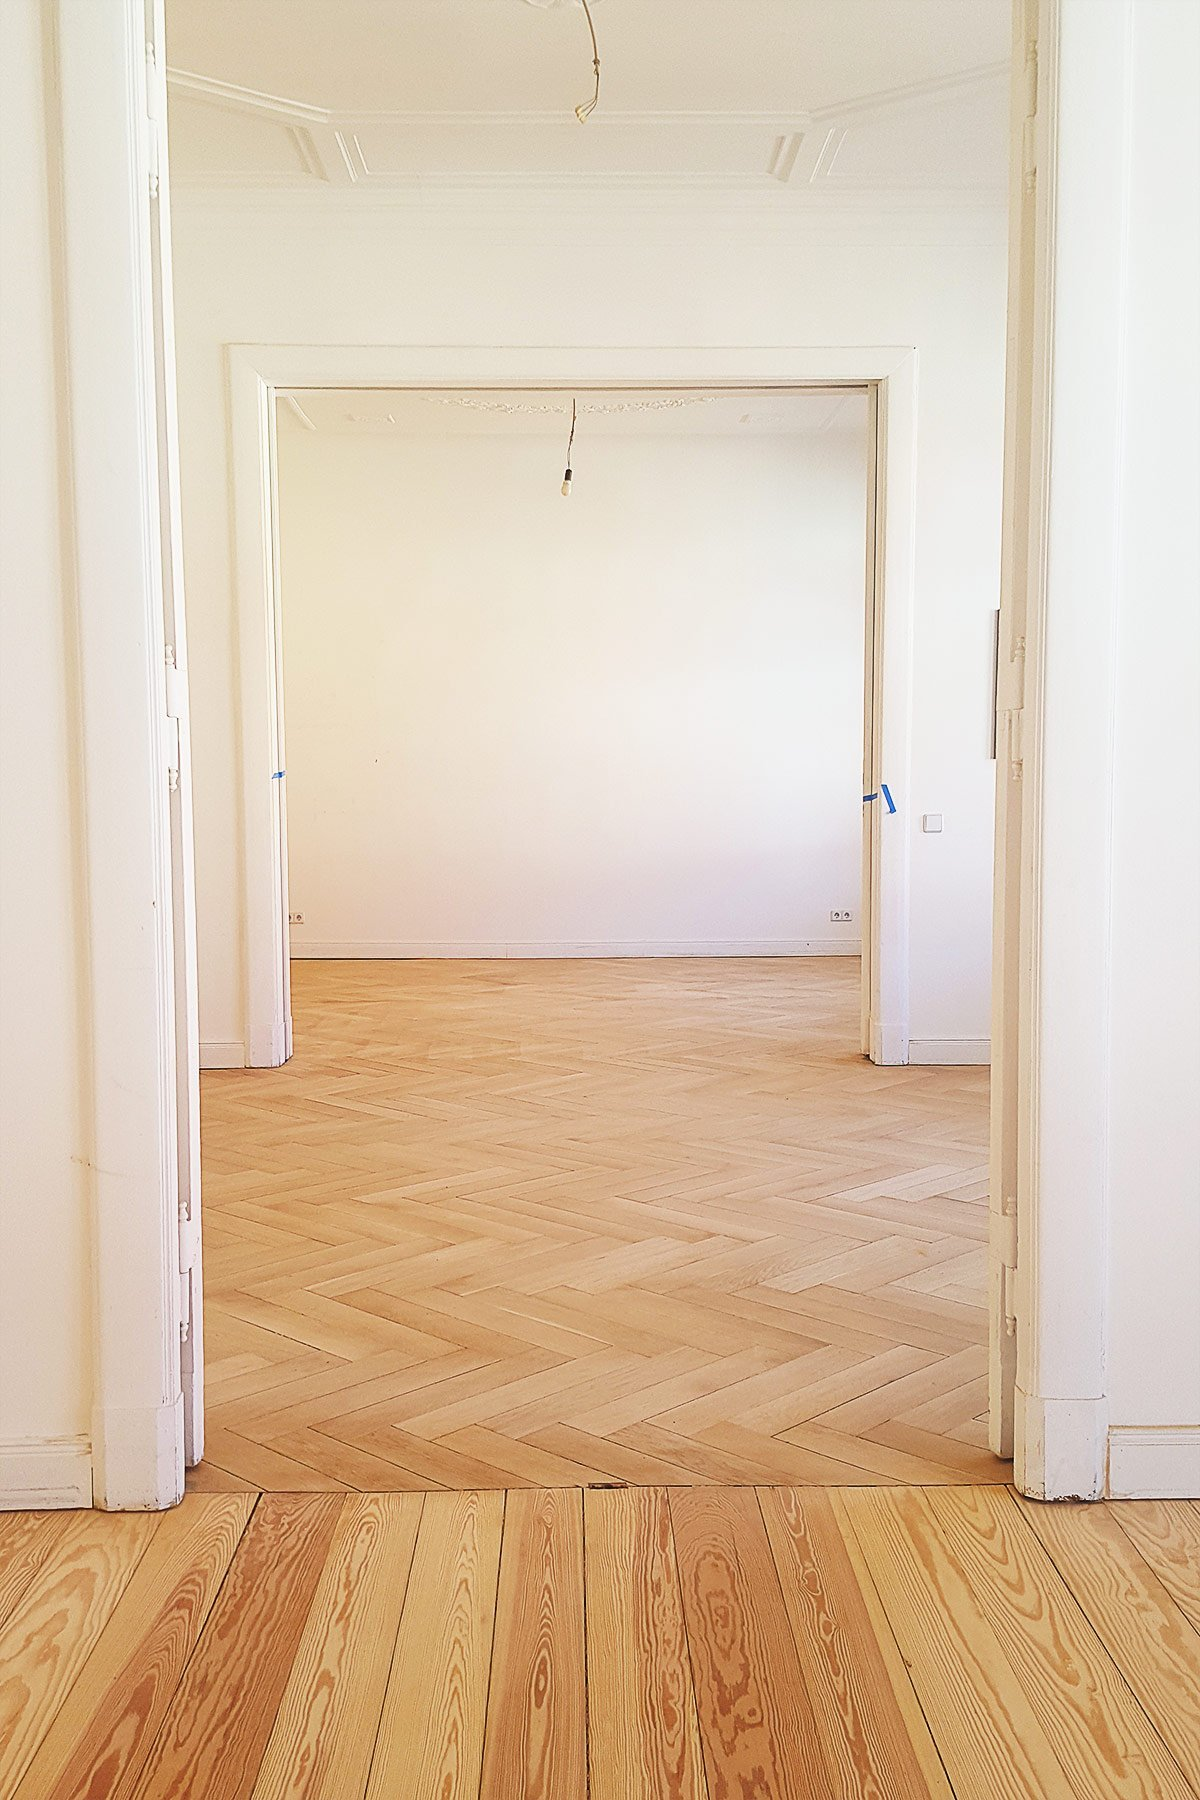 Sanding Floors | Little House On The Corner